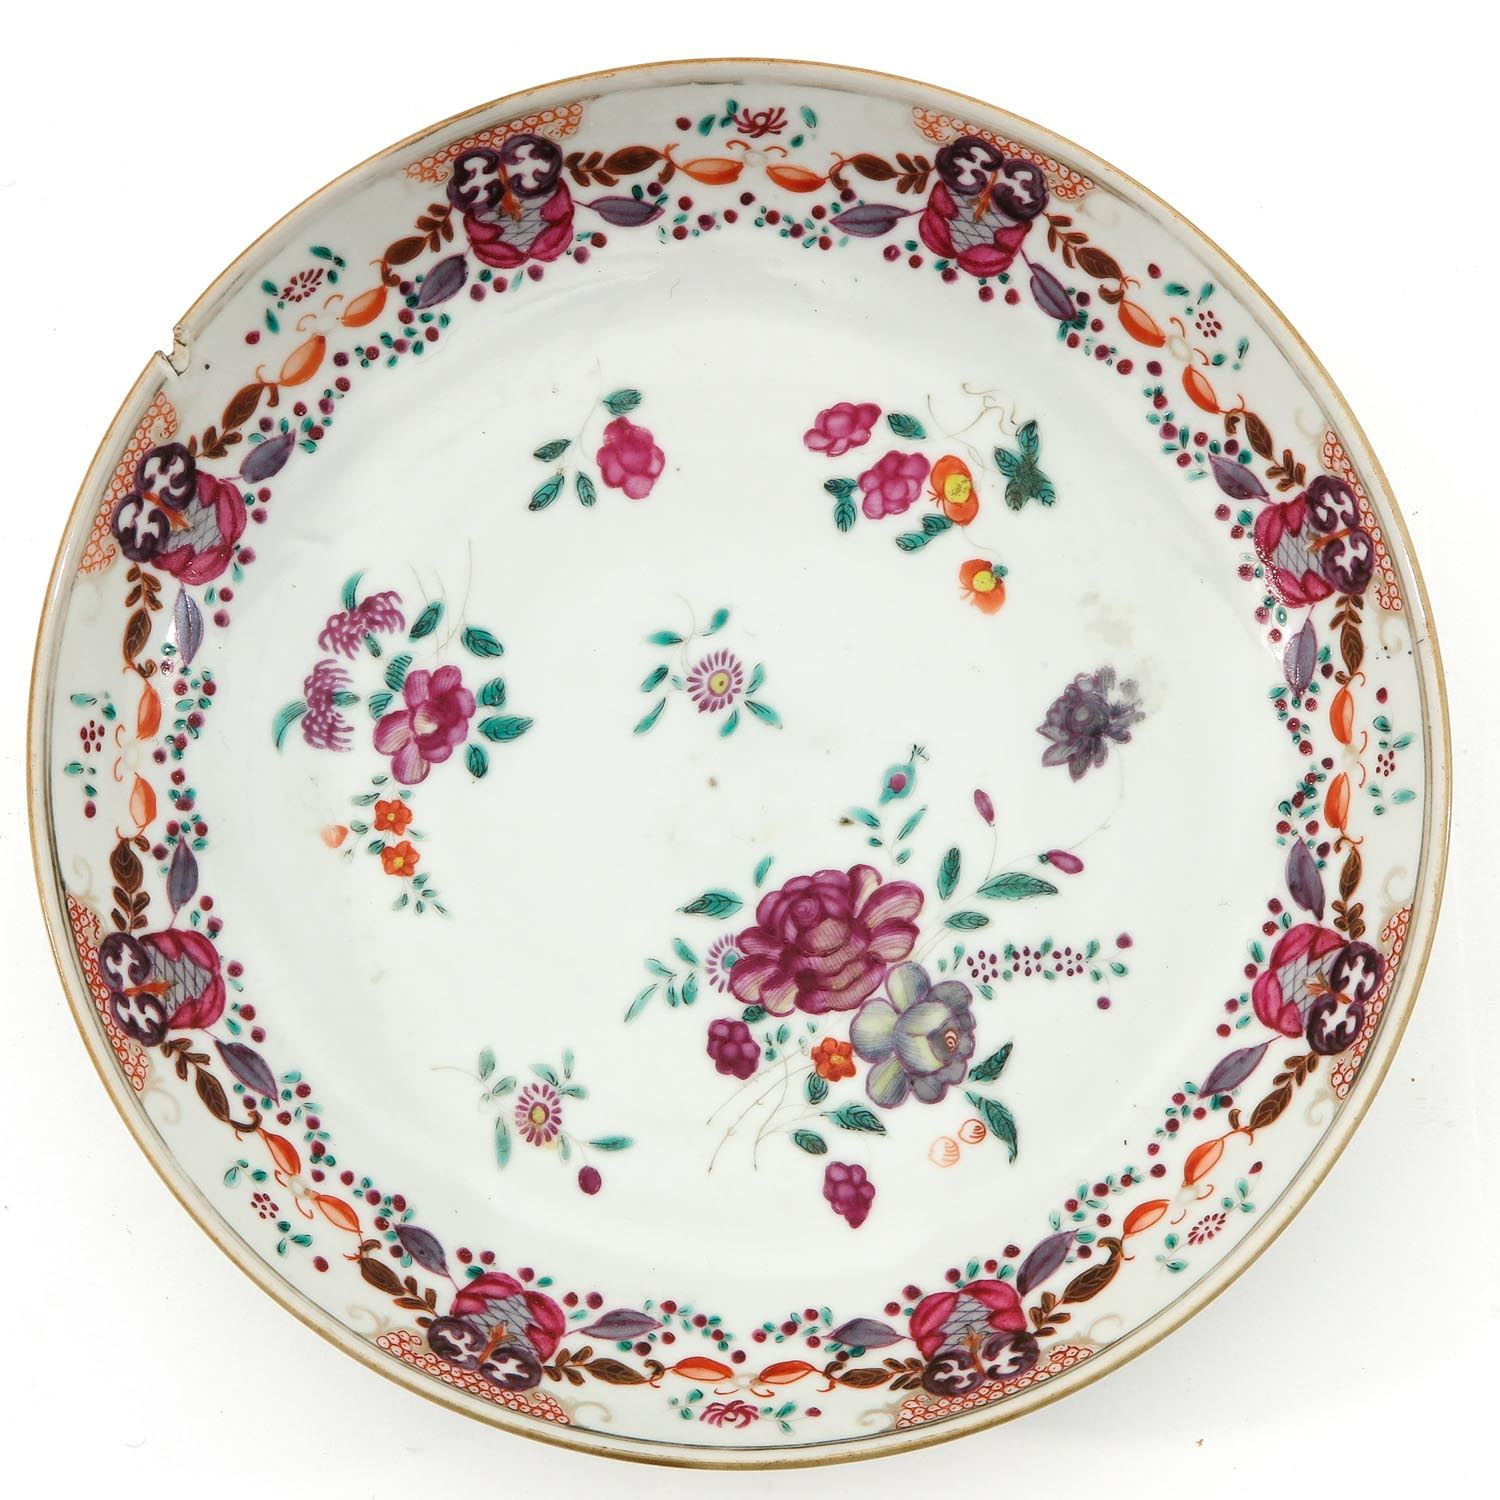 A Pair of Plates - Image 5 of 10